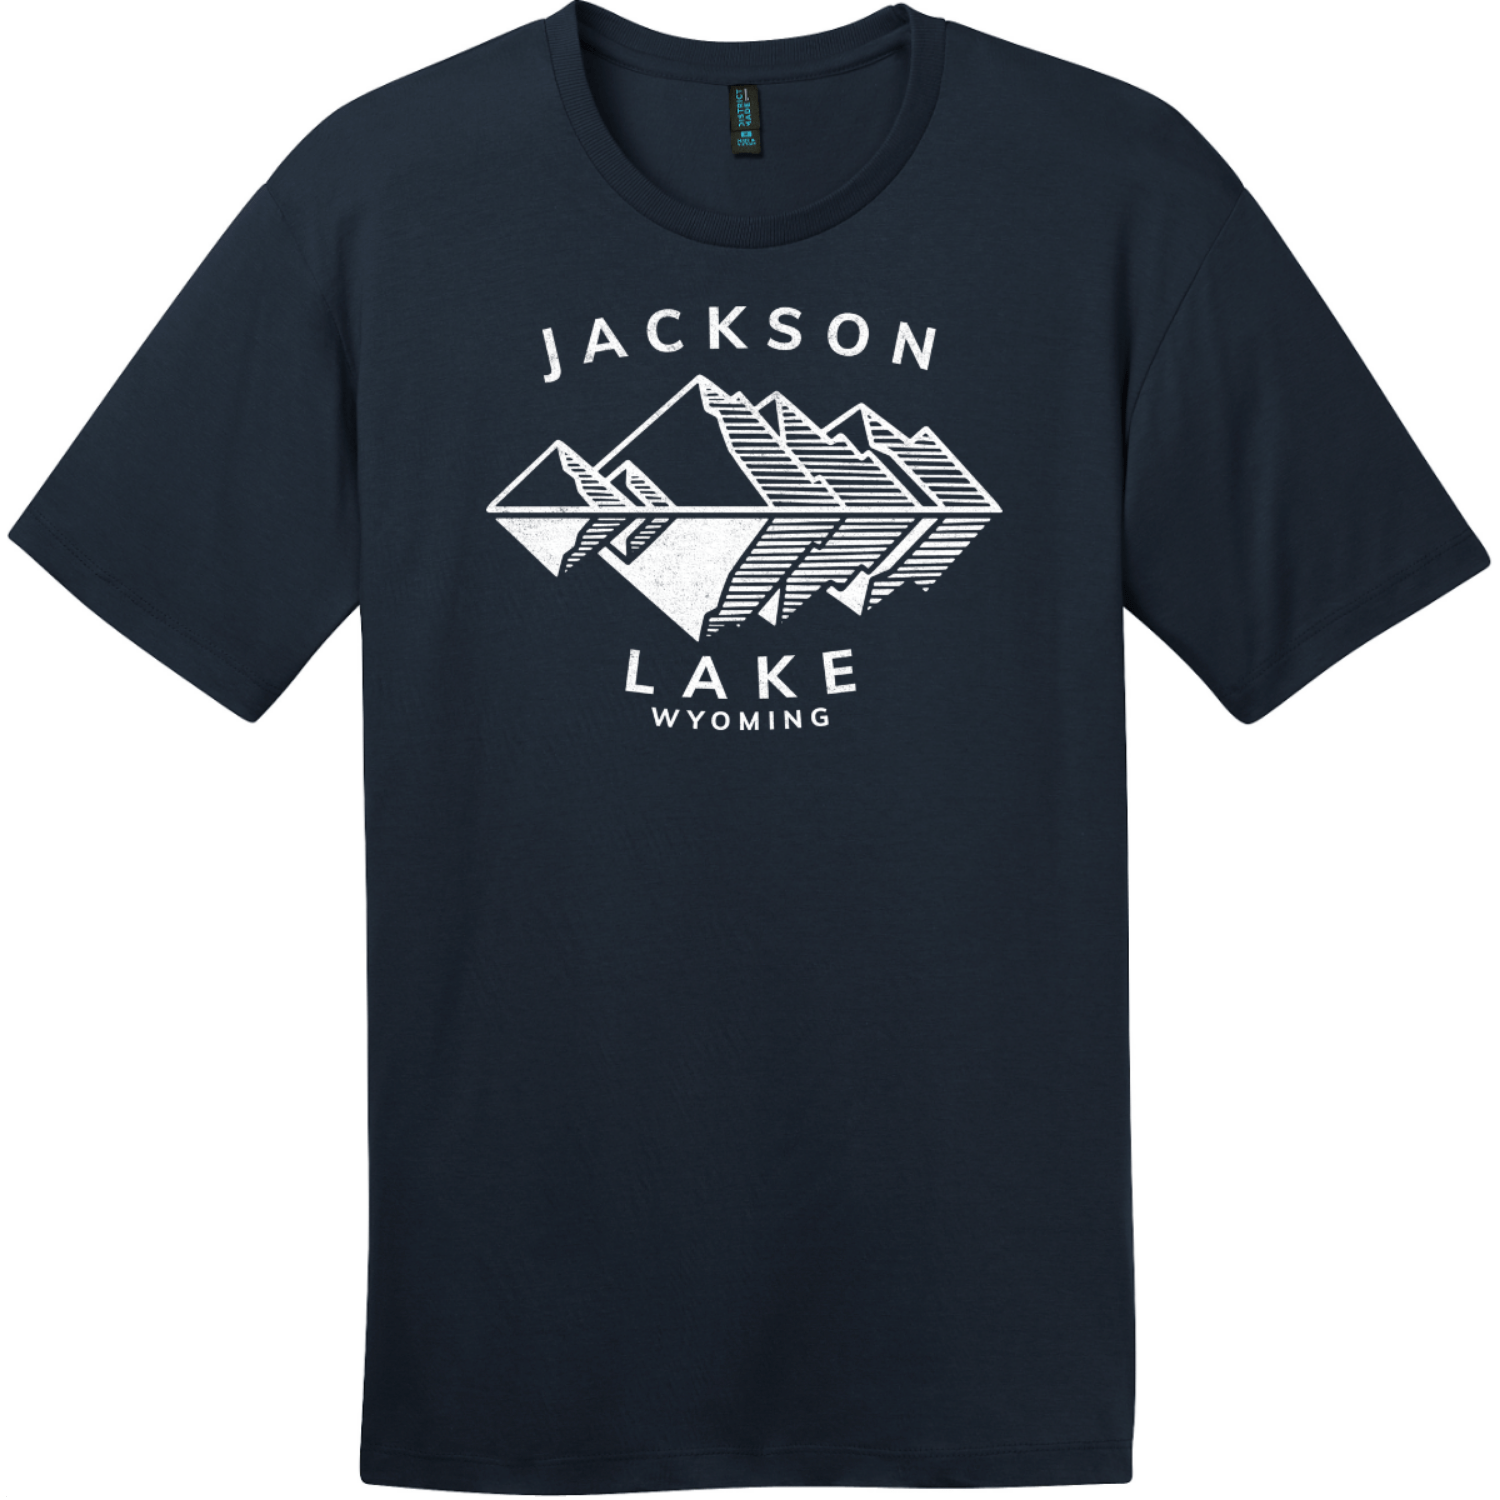 Jackson Lake Wyoming Mountains T-Shirt New Navy District Perfect Weight Tee DT104